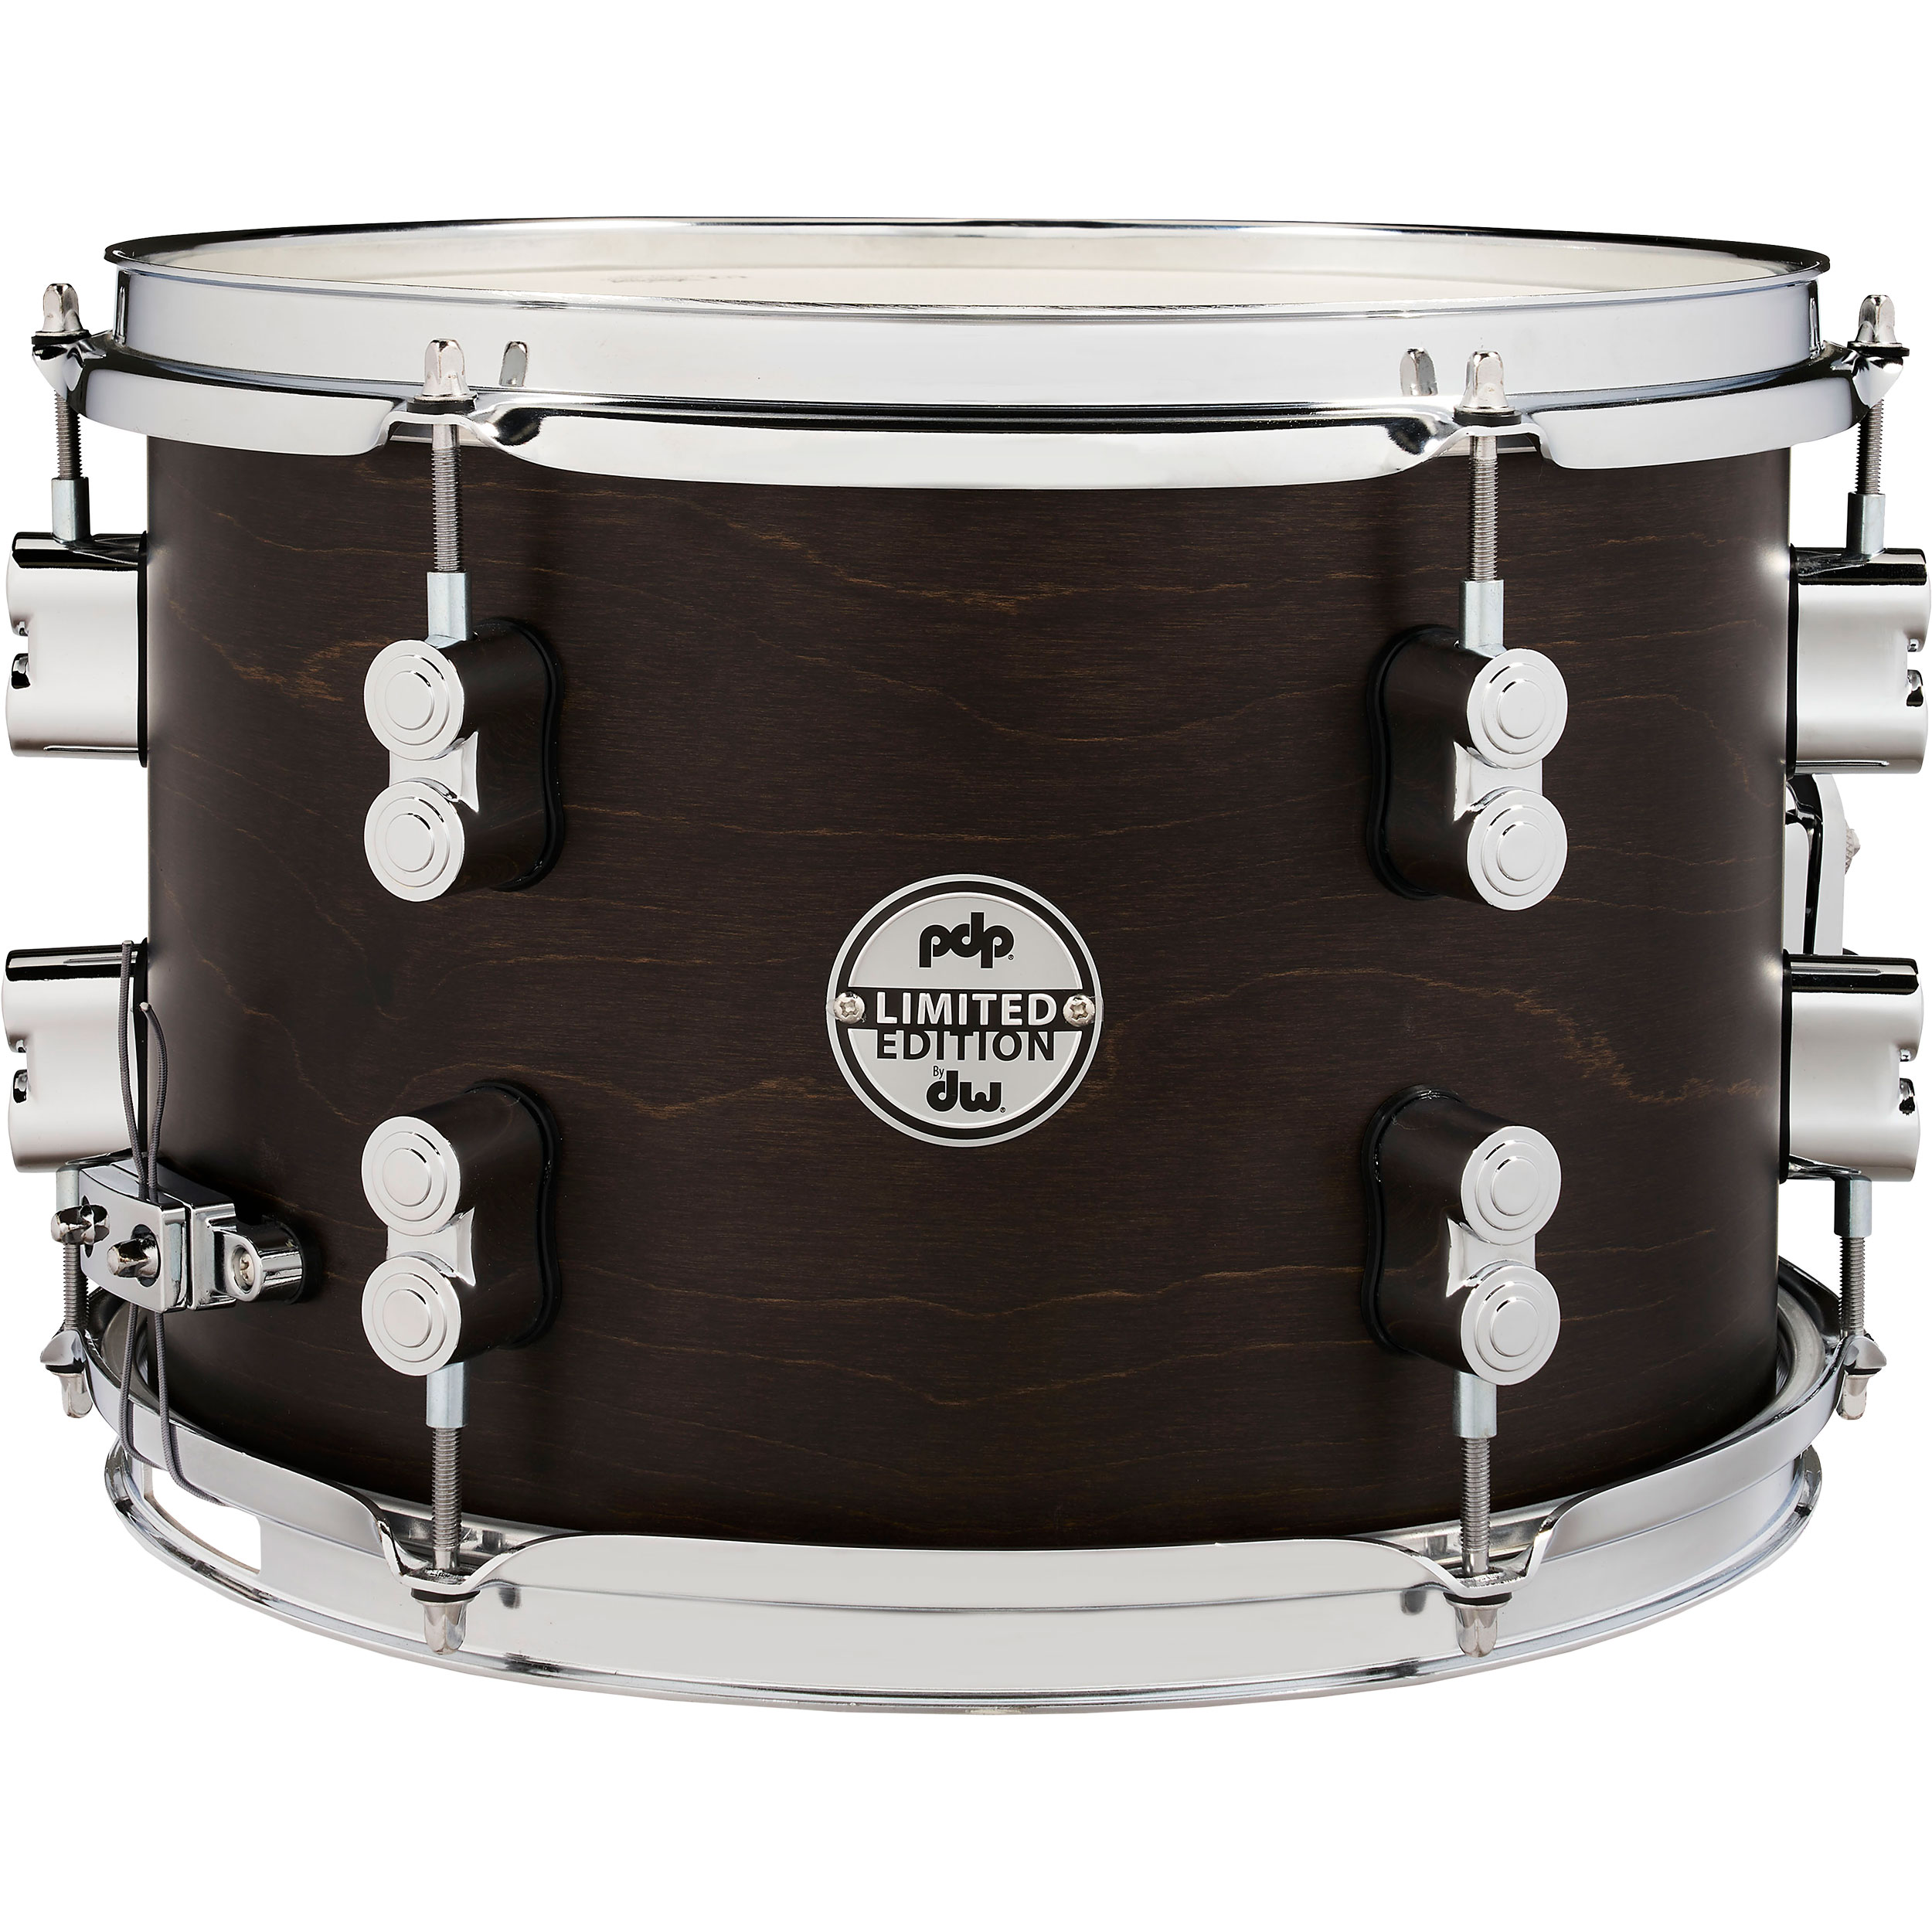 "PDP 8"" x 12"" Limited Edition Series Dry Maple Snare Drum in Dark Walnut"